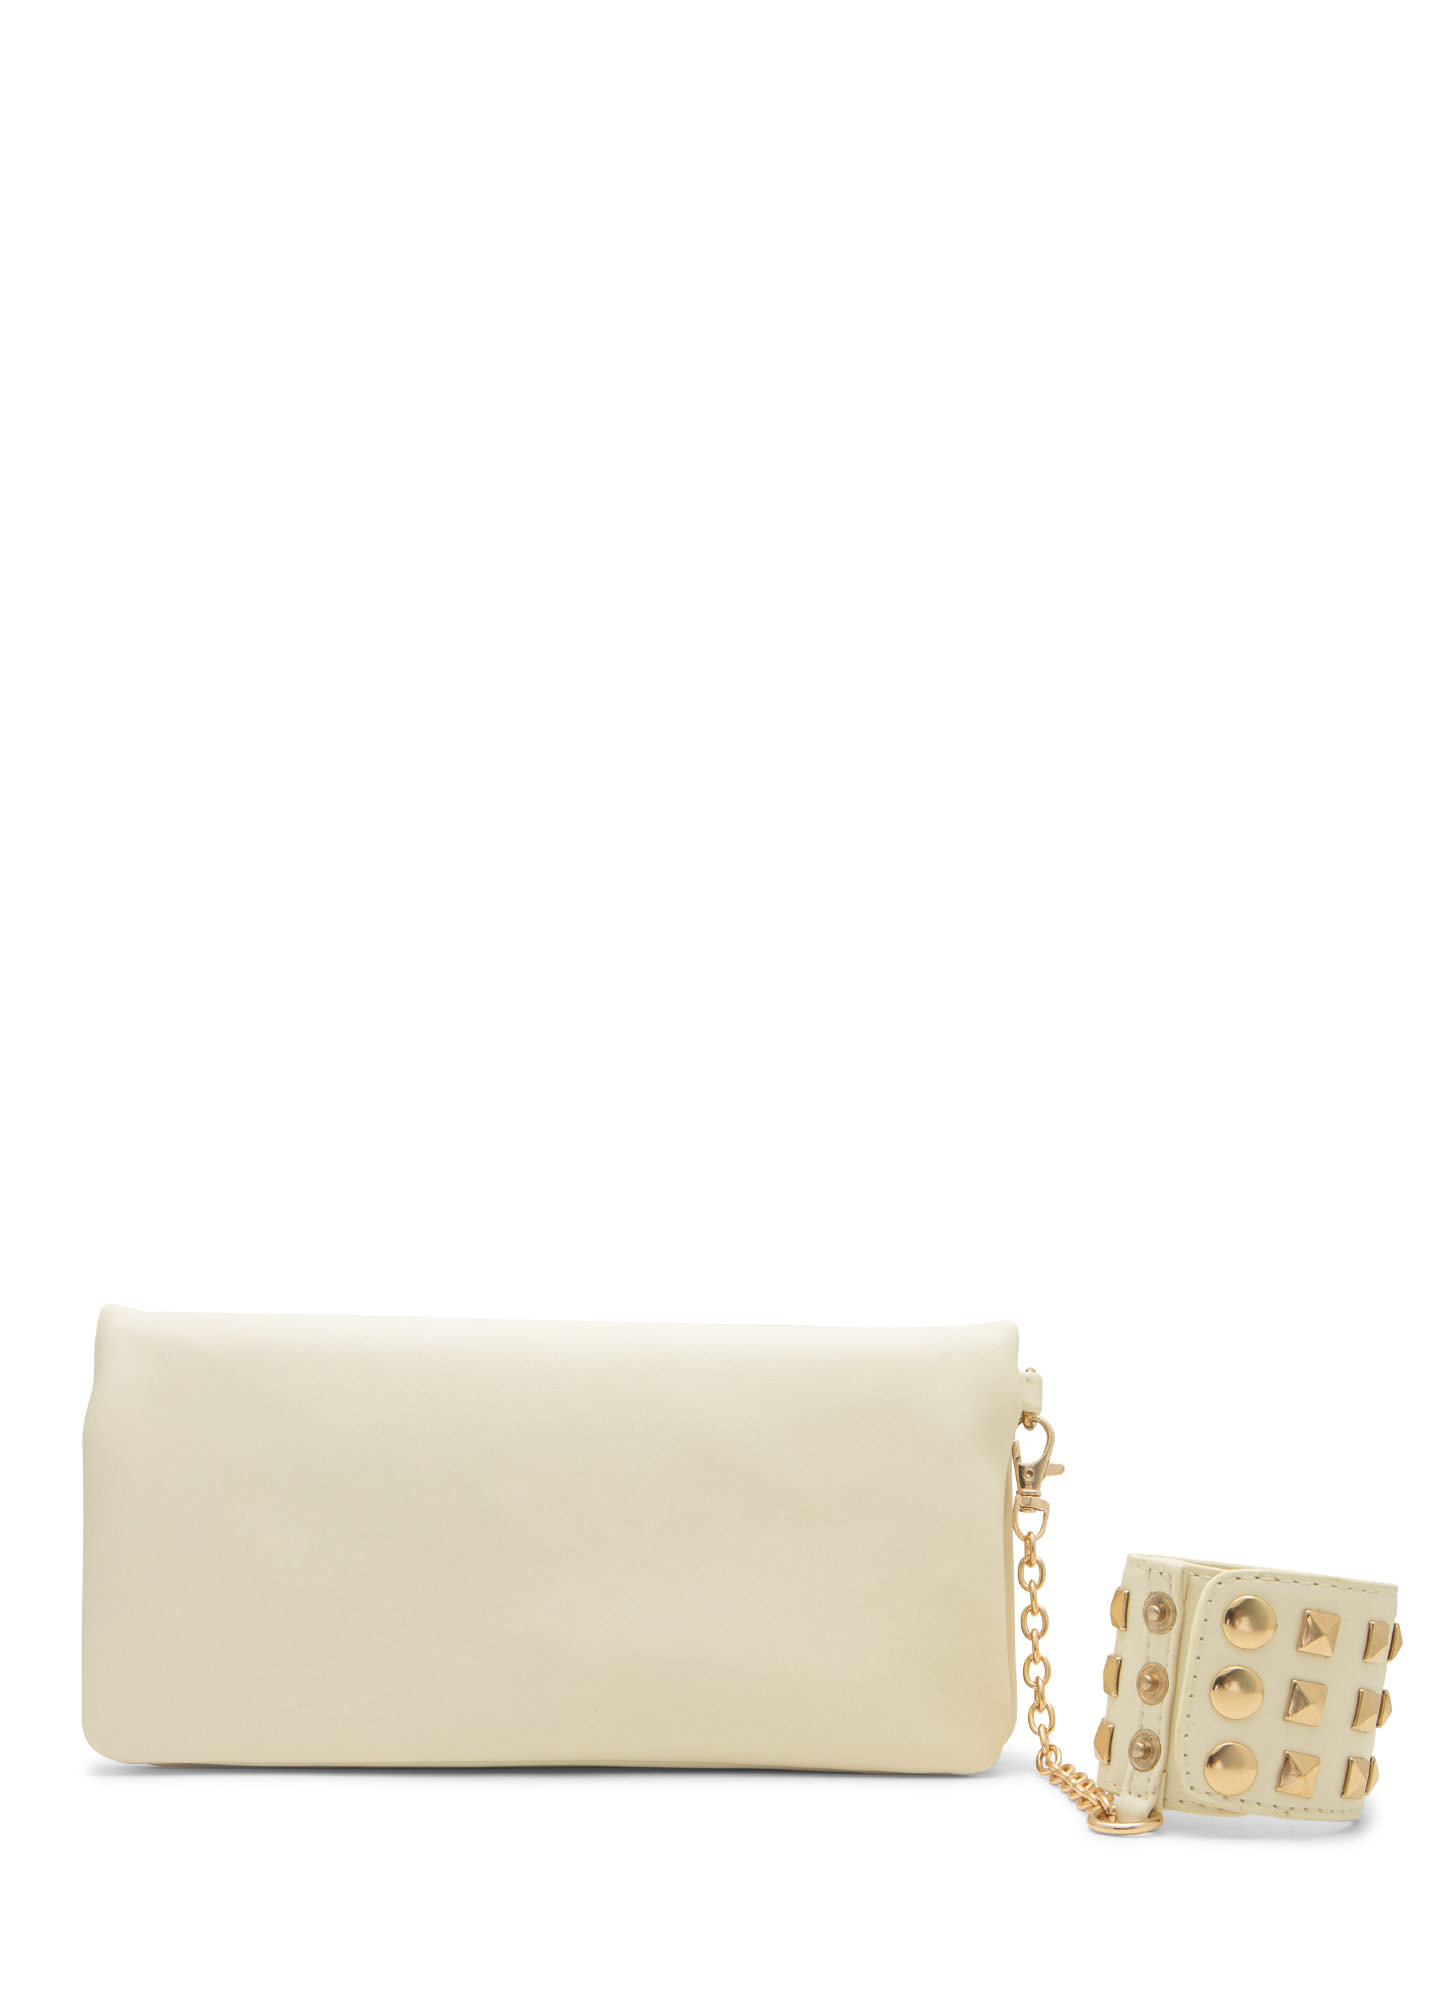 Pyramid Stud Cuff And Clutch Set IVORYGOLD